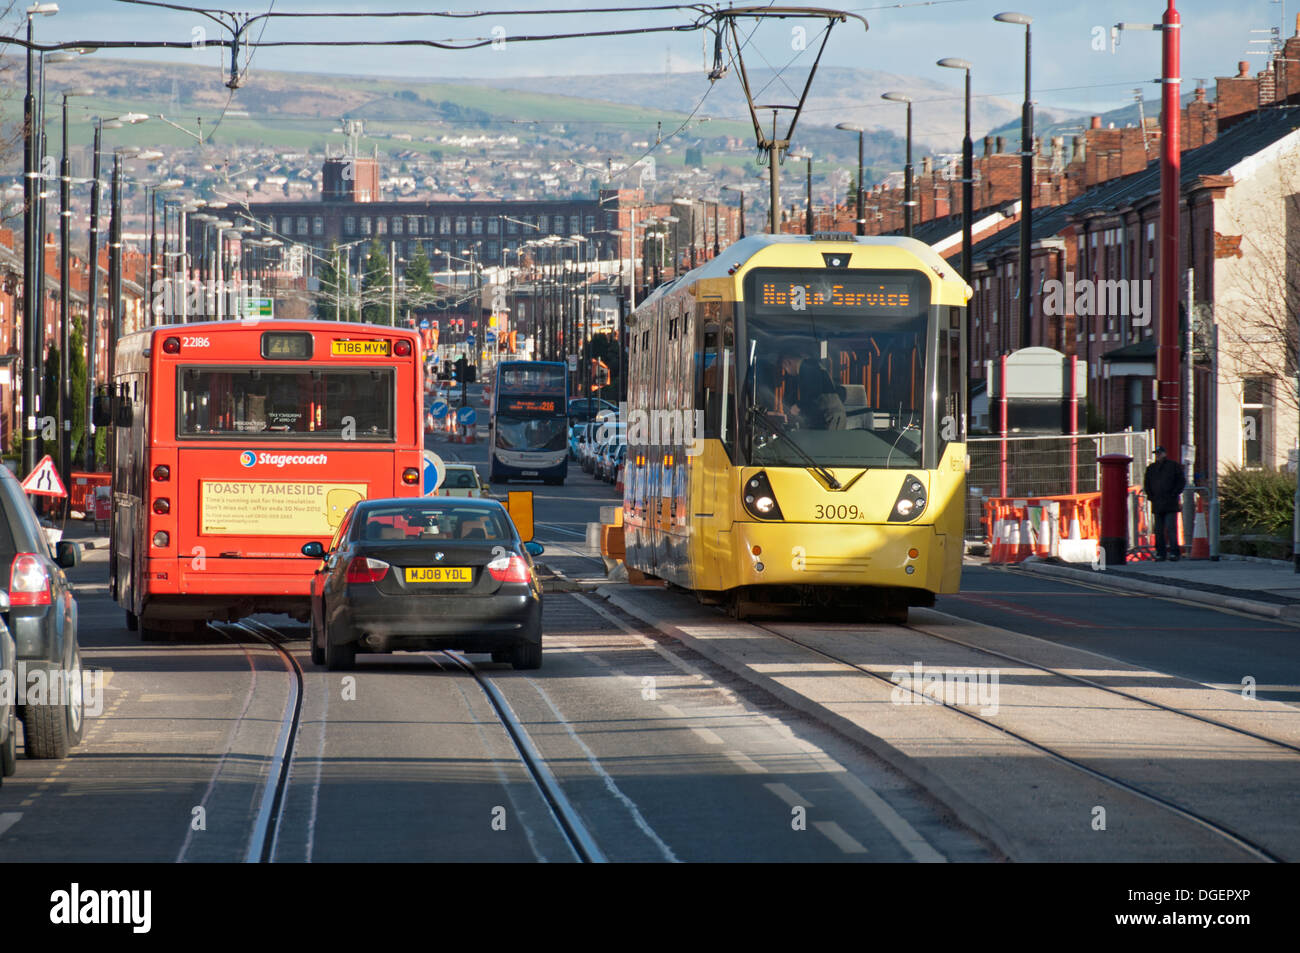 metrolink-tram-near-the-droylsden-stop-d